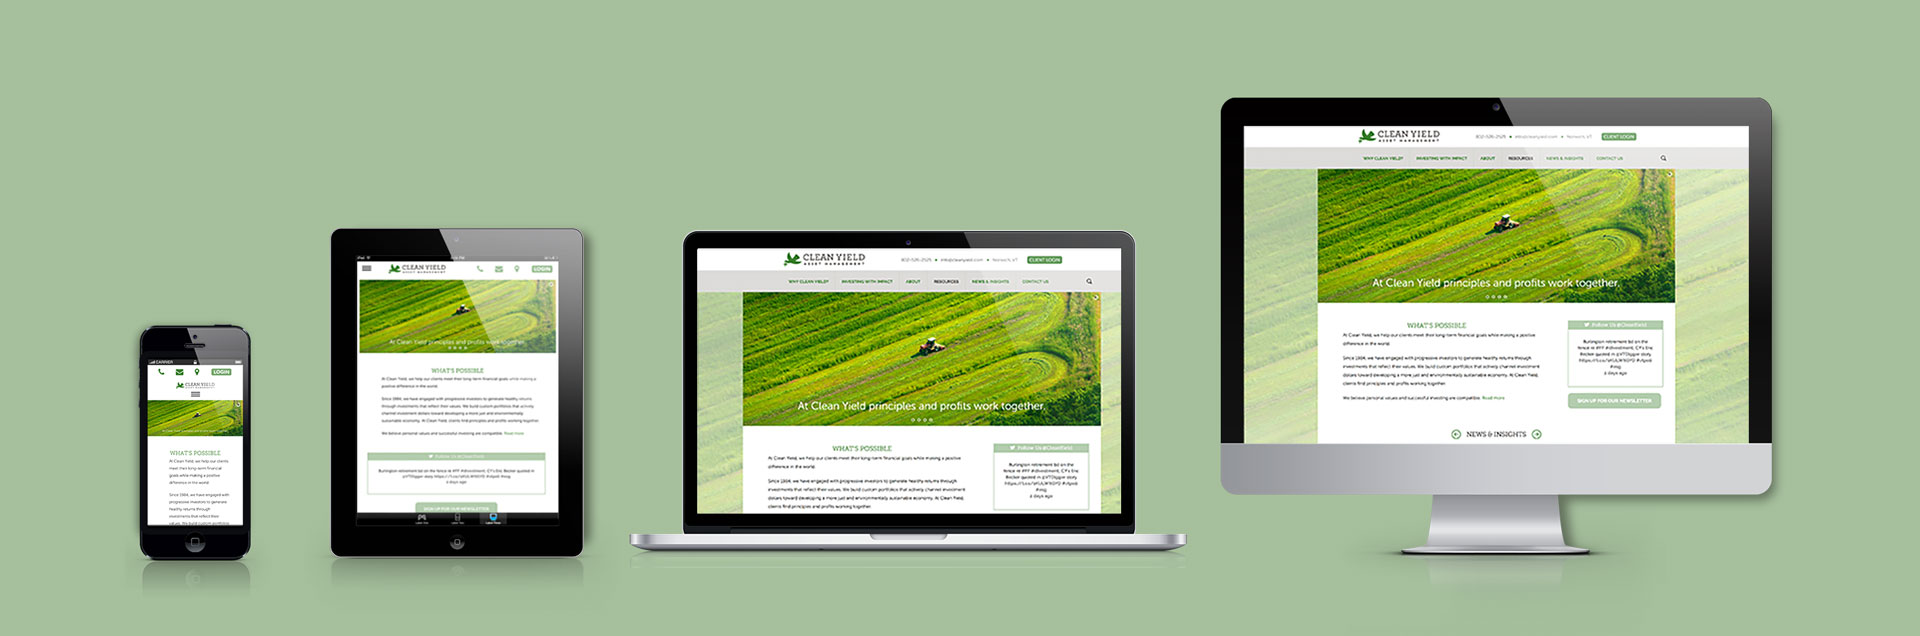 Display of new website design for Clean Yield shown through various device screen sizes